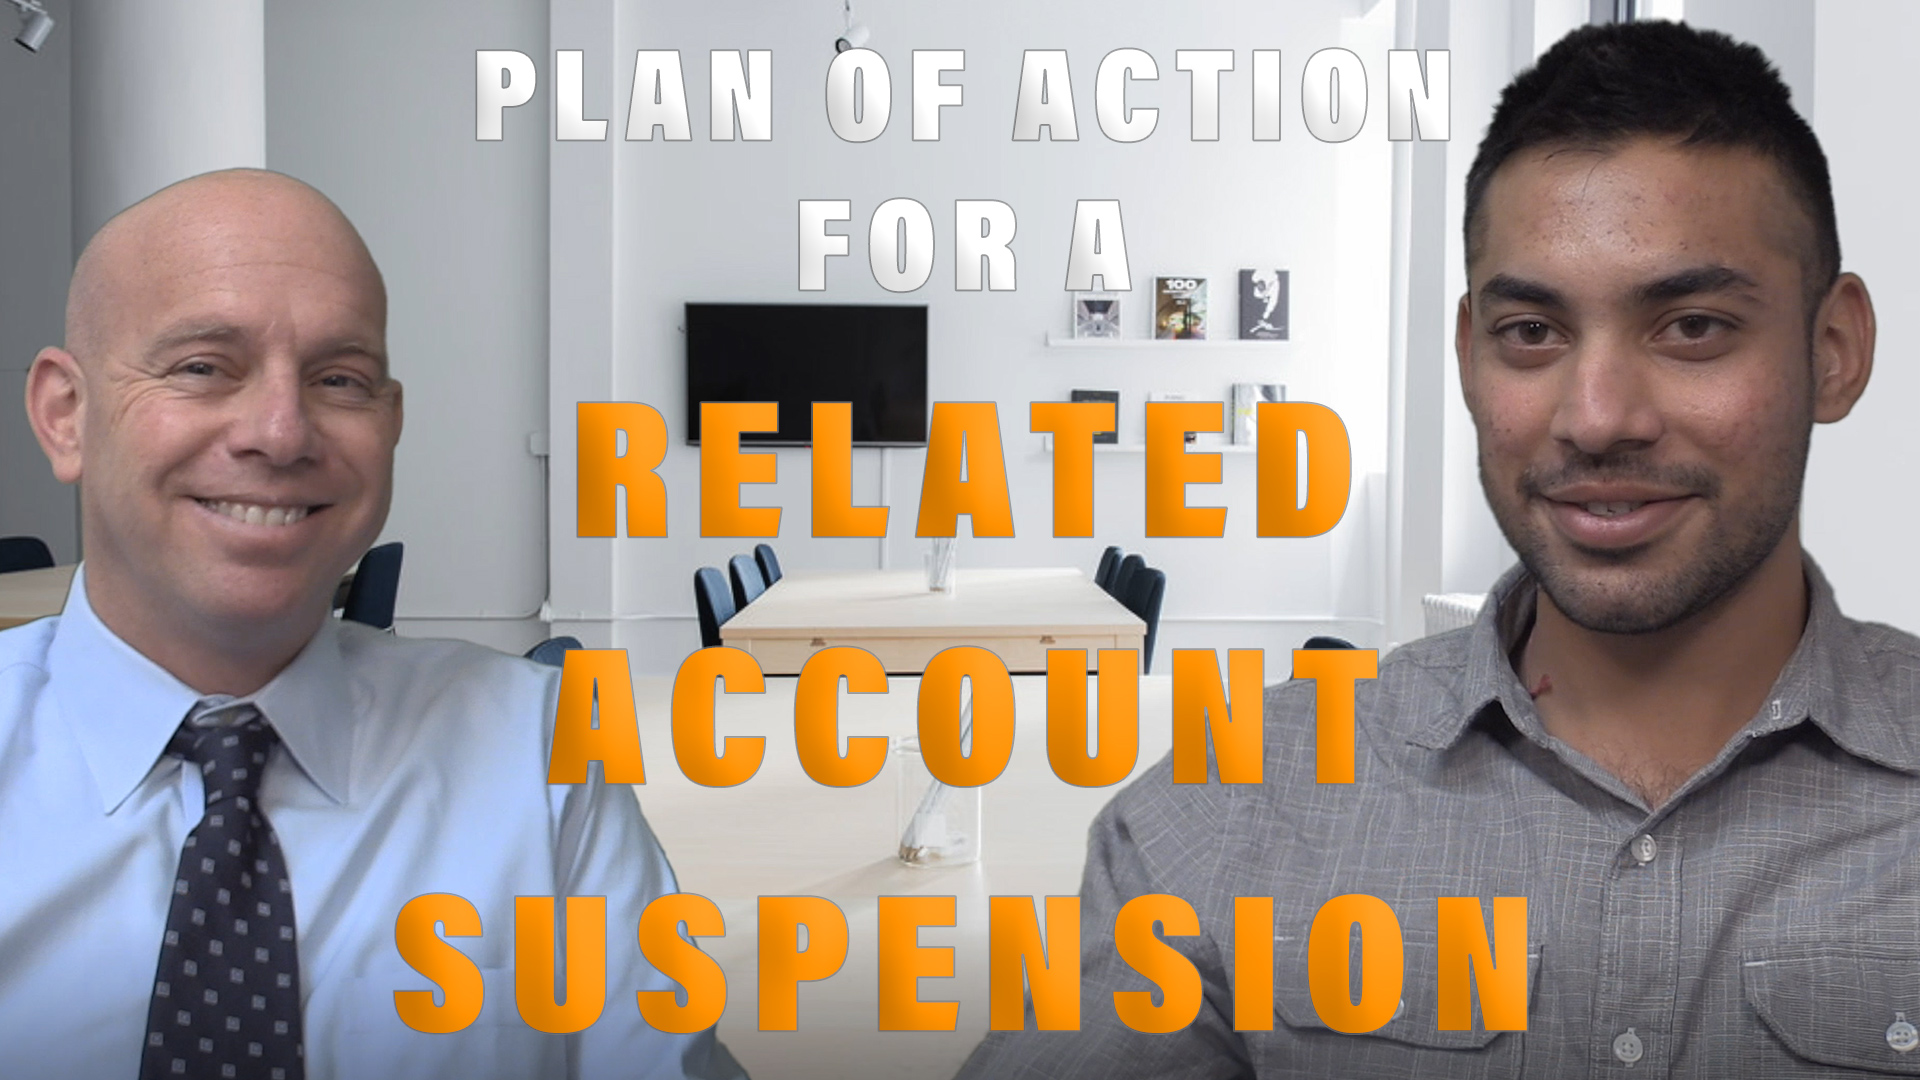 Plan of Action for a Related Account Suspension